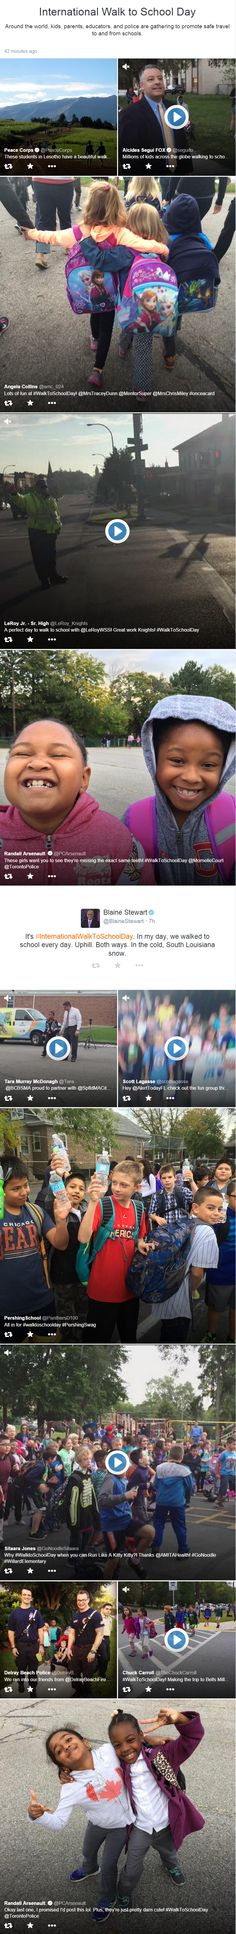 International Walk to School Day was featured on Twitter Moments on 10/7/2015. All but one tweet included a visual. And, looks like Twitter may showcase timely events that have trending hashtags (a reason to use an editorial calendar). Featured tweeters include parents, schools, school principals, TV stations and media personalities, community police officers, community managers, a government agency (@peacecorps), and a NASCAR driver.  #WalkToSchoolDay #socialmedia #Twitter